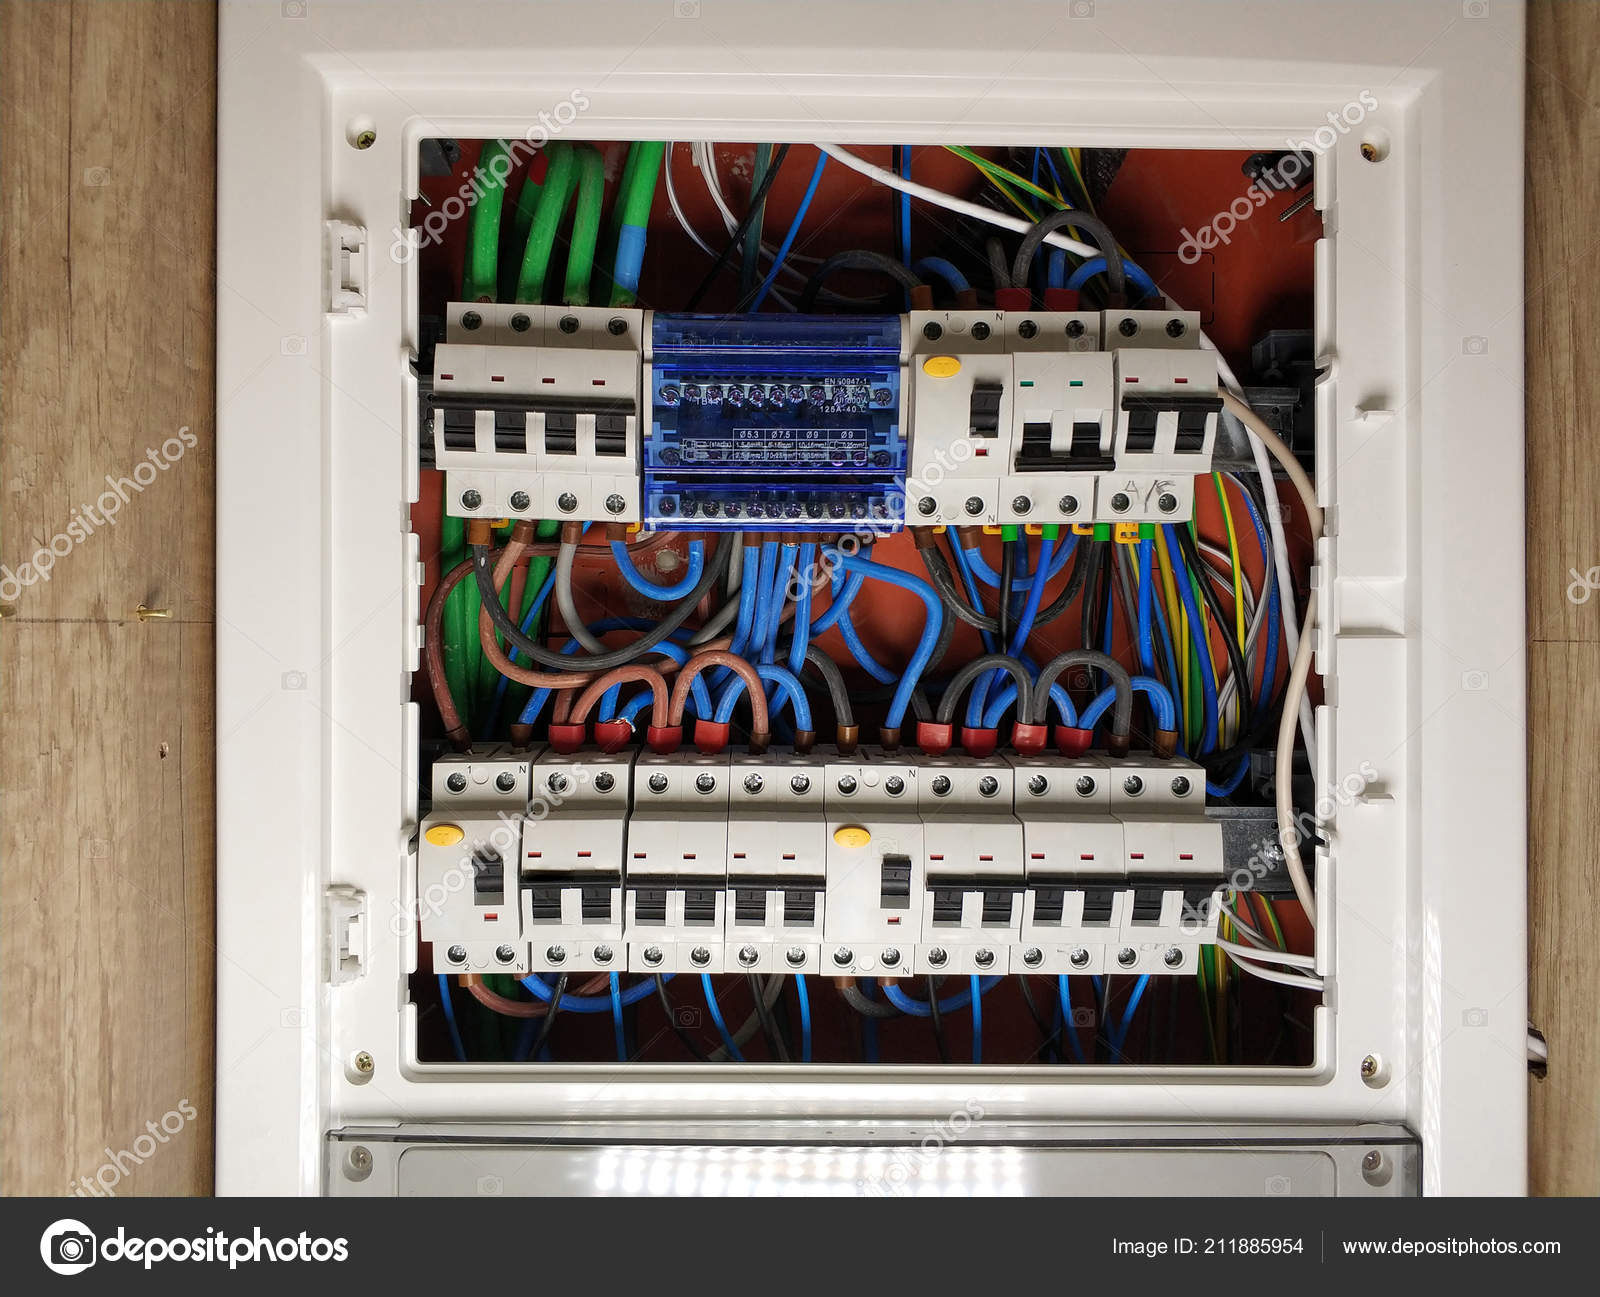 Magnificent Close White Frame Panel Electrical Switch Board Colourful Cables Wiring Cloud Nuvitbieswglorg